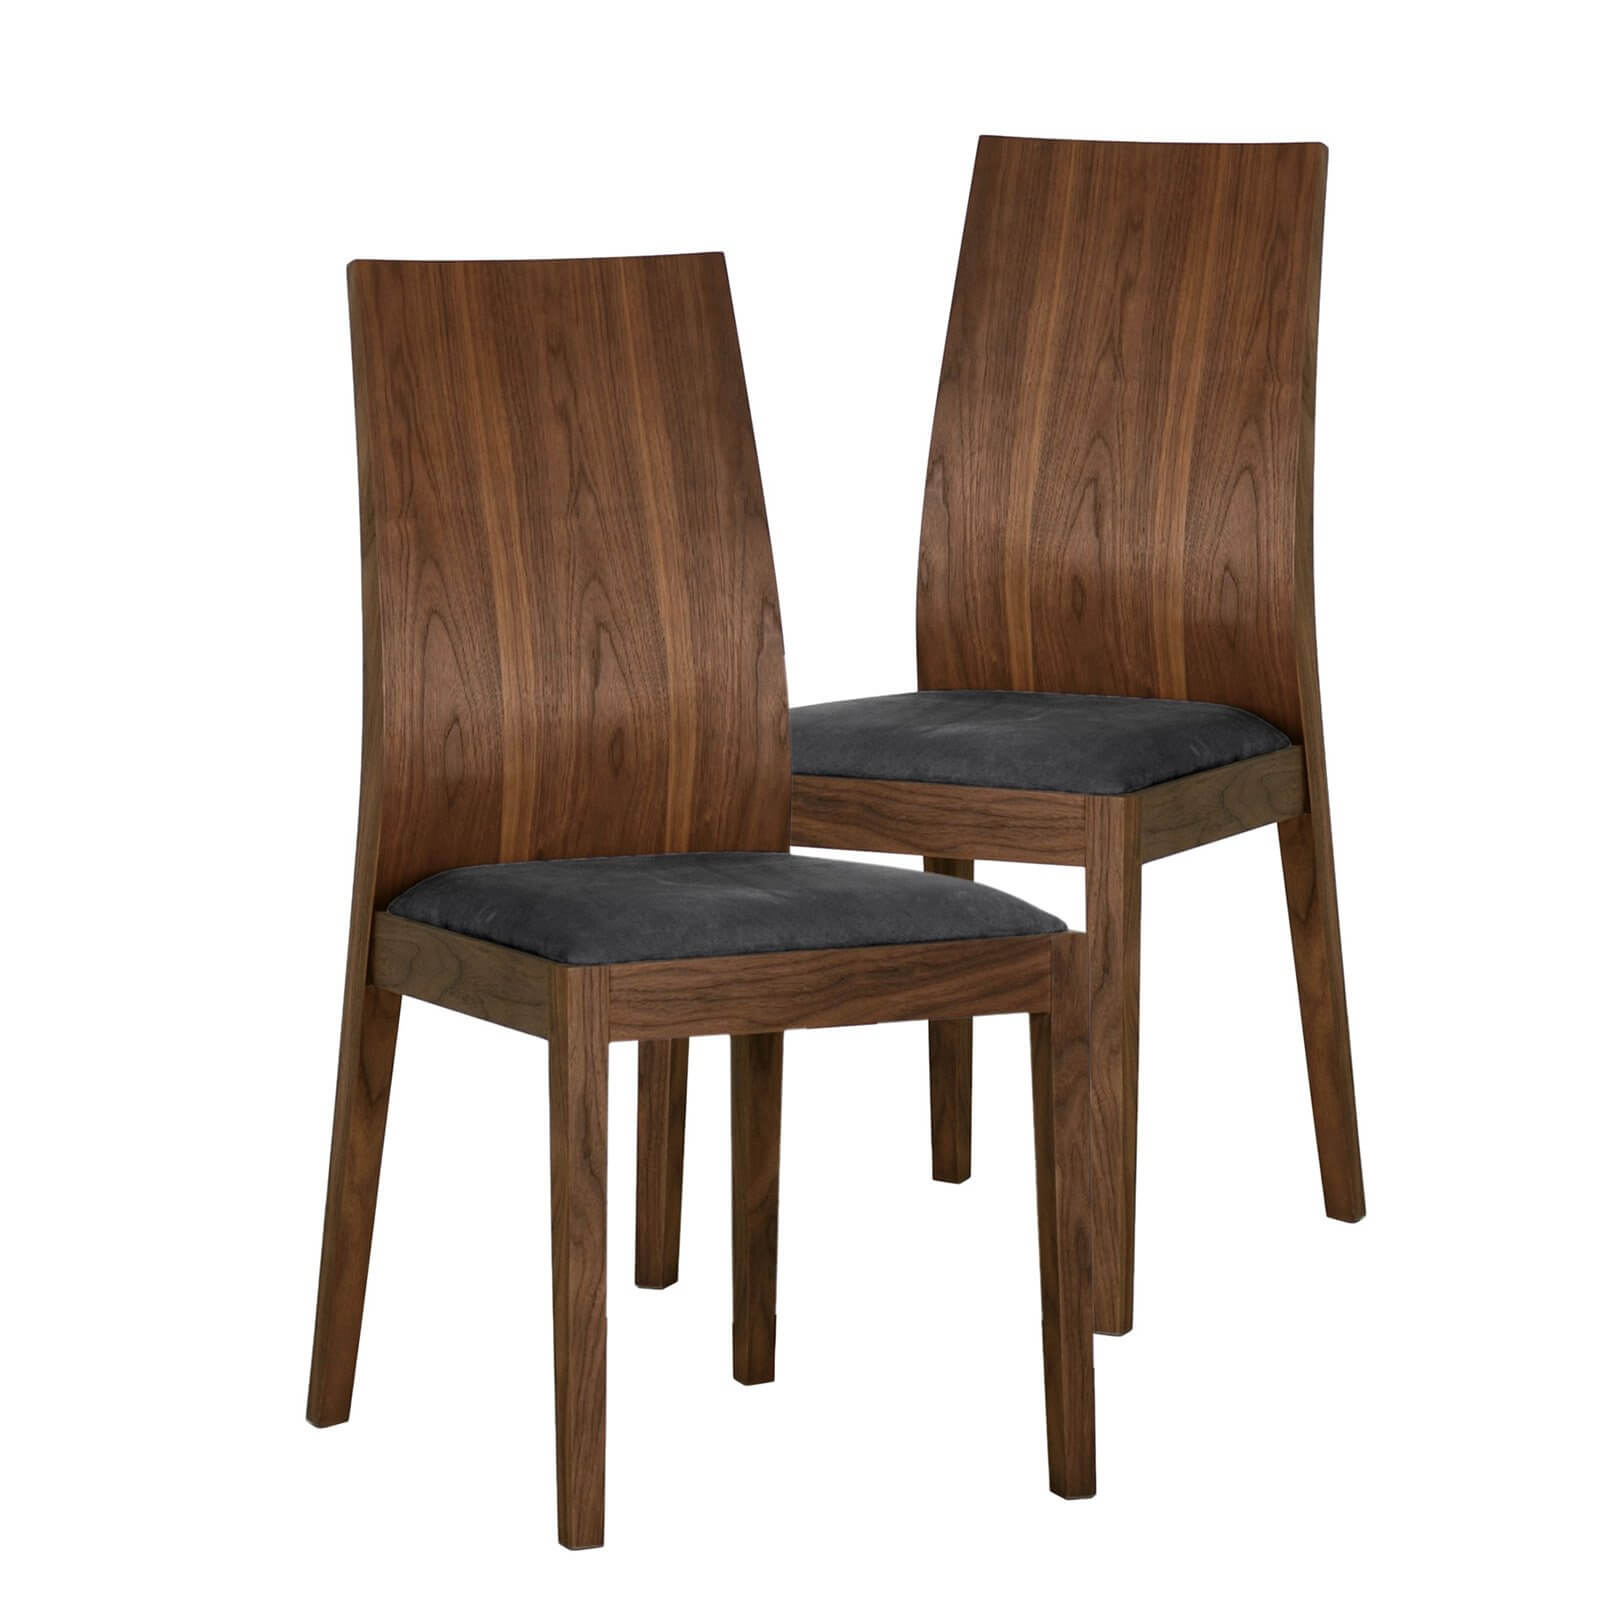 Modern style concerns itself with a perfect blending of form and function, with minimal embellishments and a beautiful minimalism. Our example is a Parson chair with curved wood back.